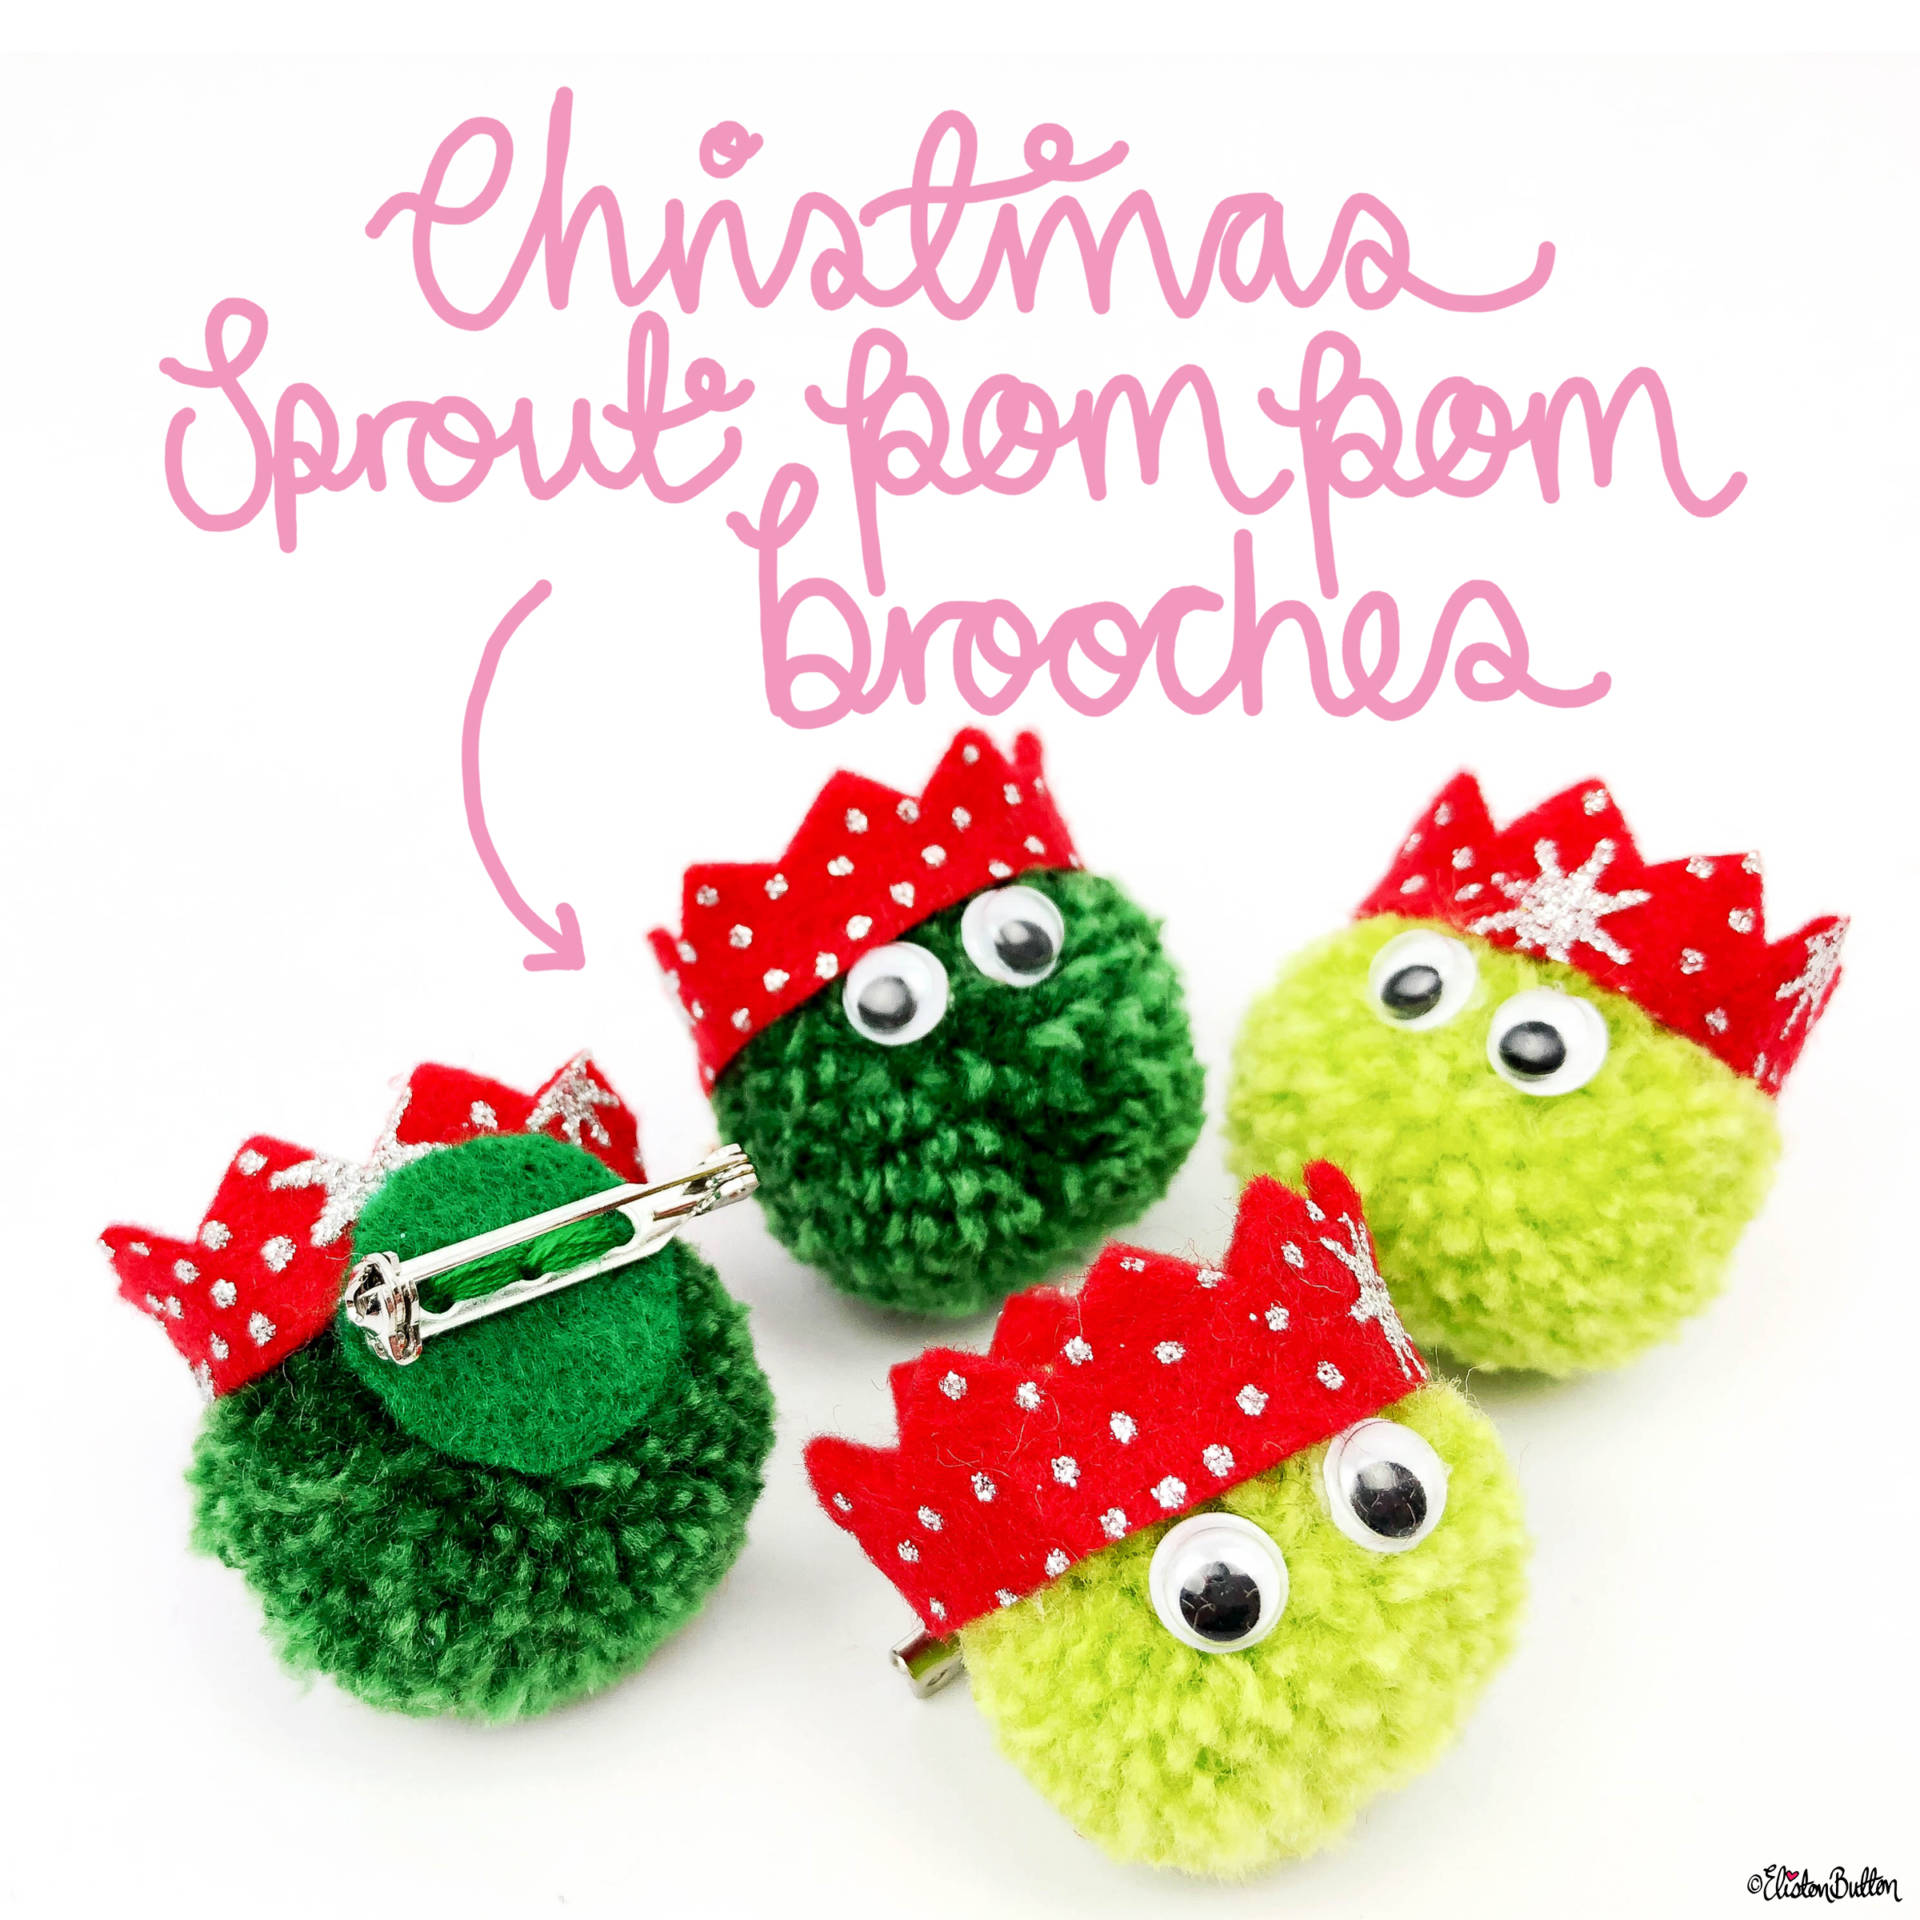 Mini Christmas Sprout Pom Pom Brooches by Eliston Button - Eliston Button is Four! at www.elistonbutton.com - Eliston Button - That Crafty Kid – Art, Design, Craft & Adventure.